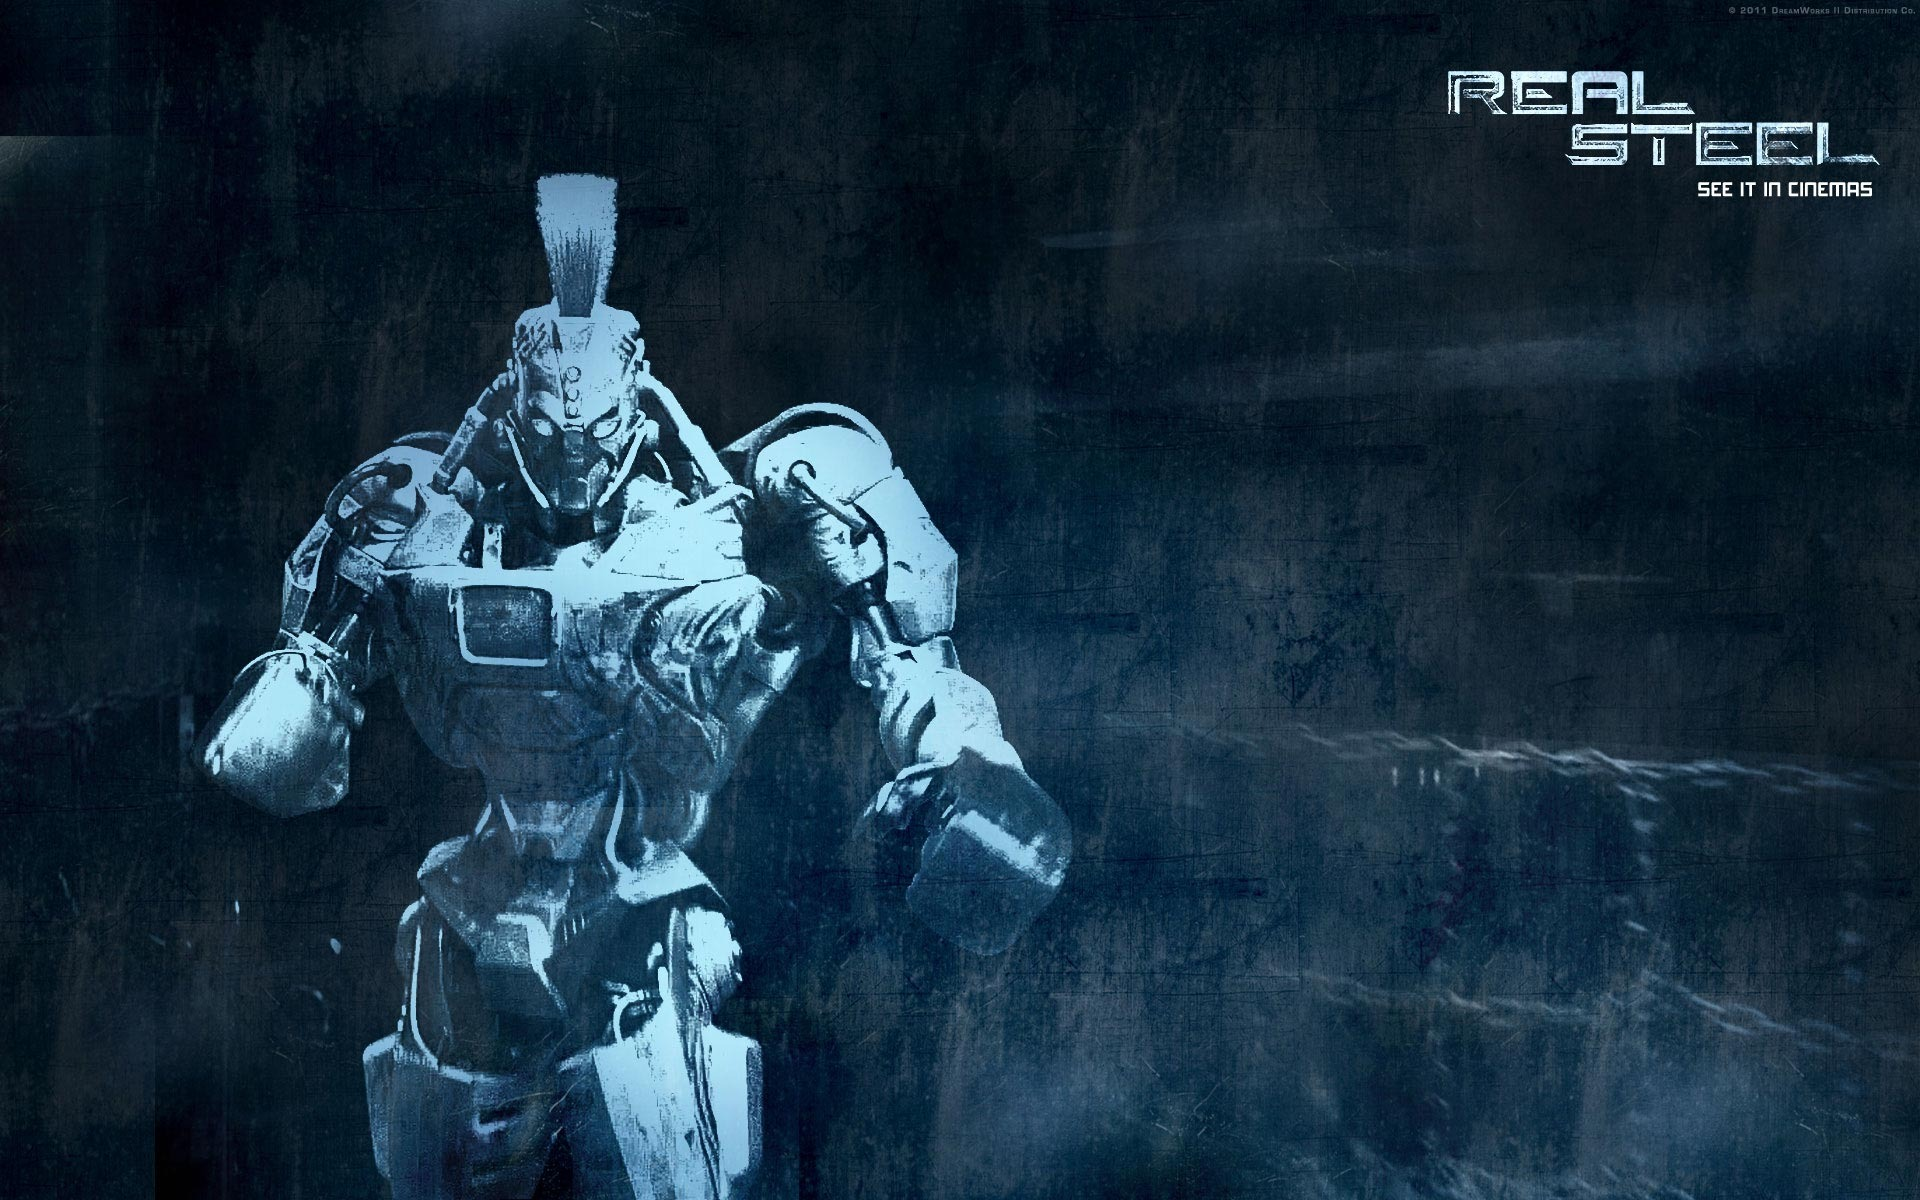 Real Steel Hd Wallpapers 9 1920x1200 Wallpaper Download Real